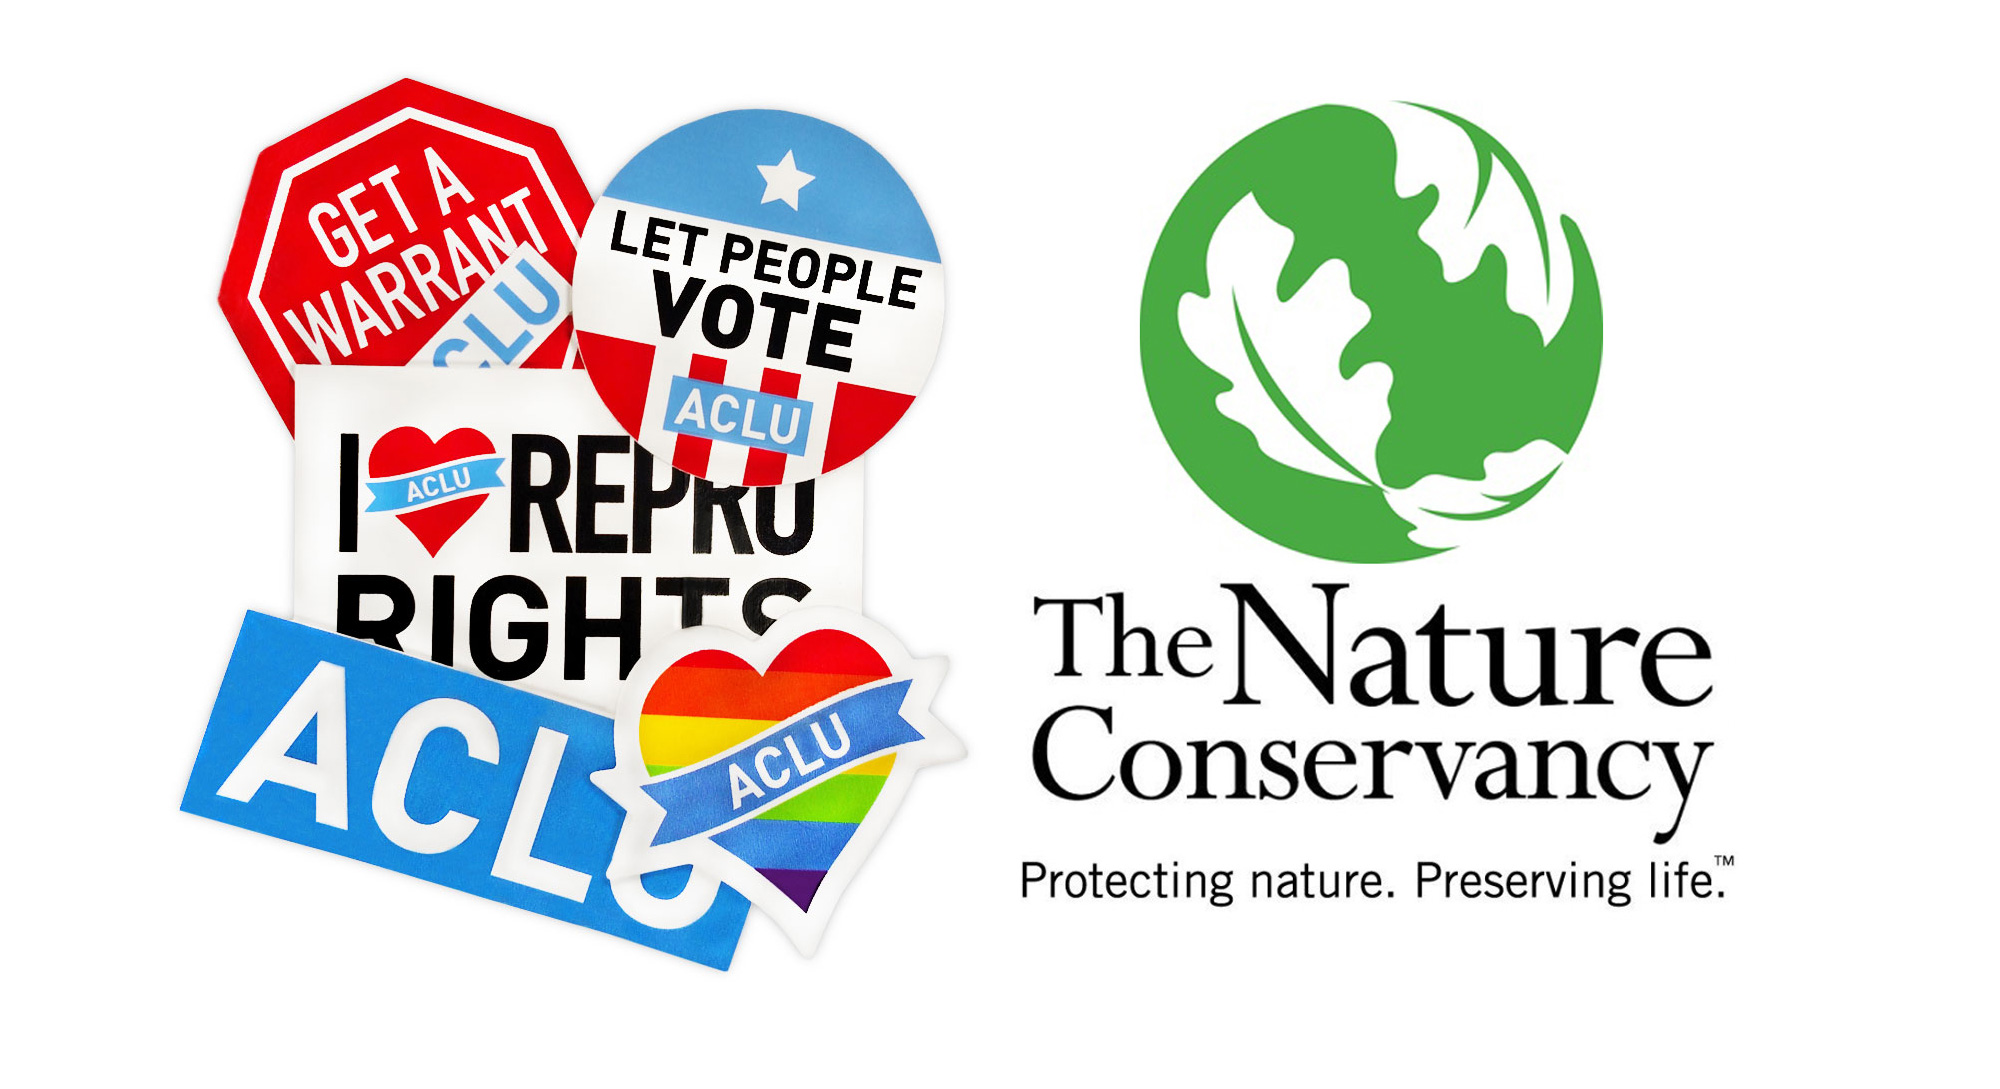 ACLU + The Nature Conservancy